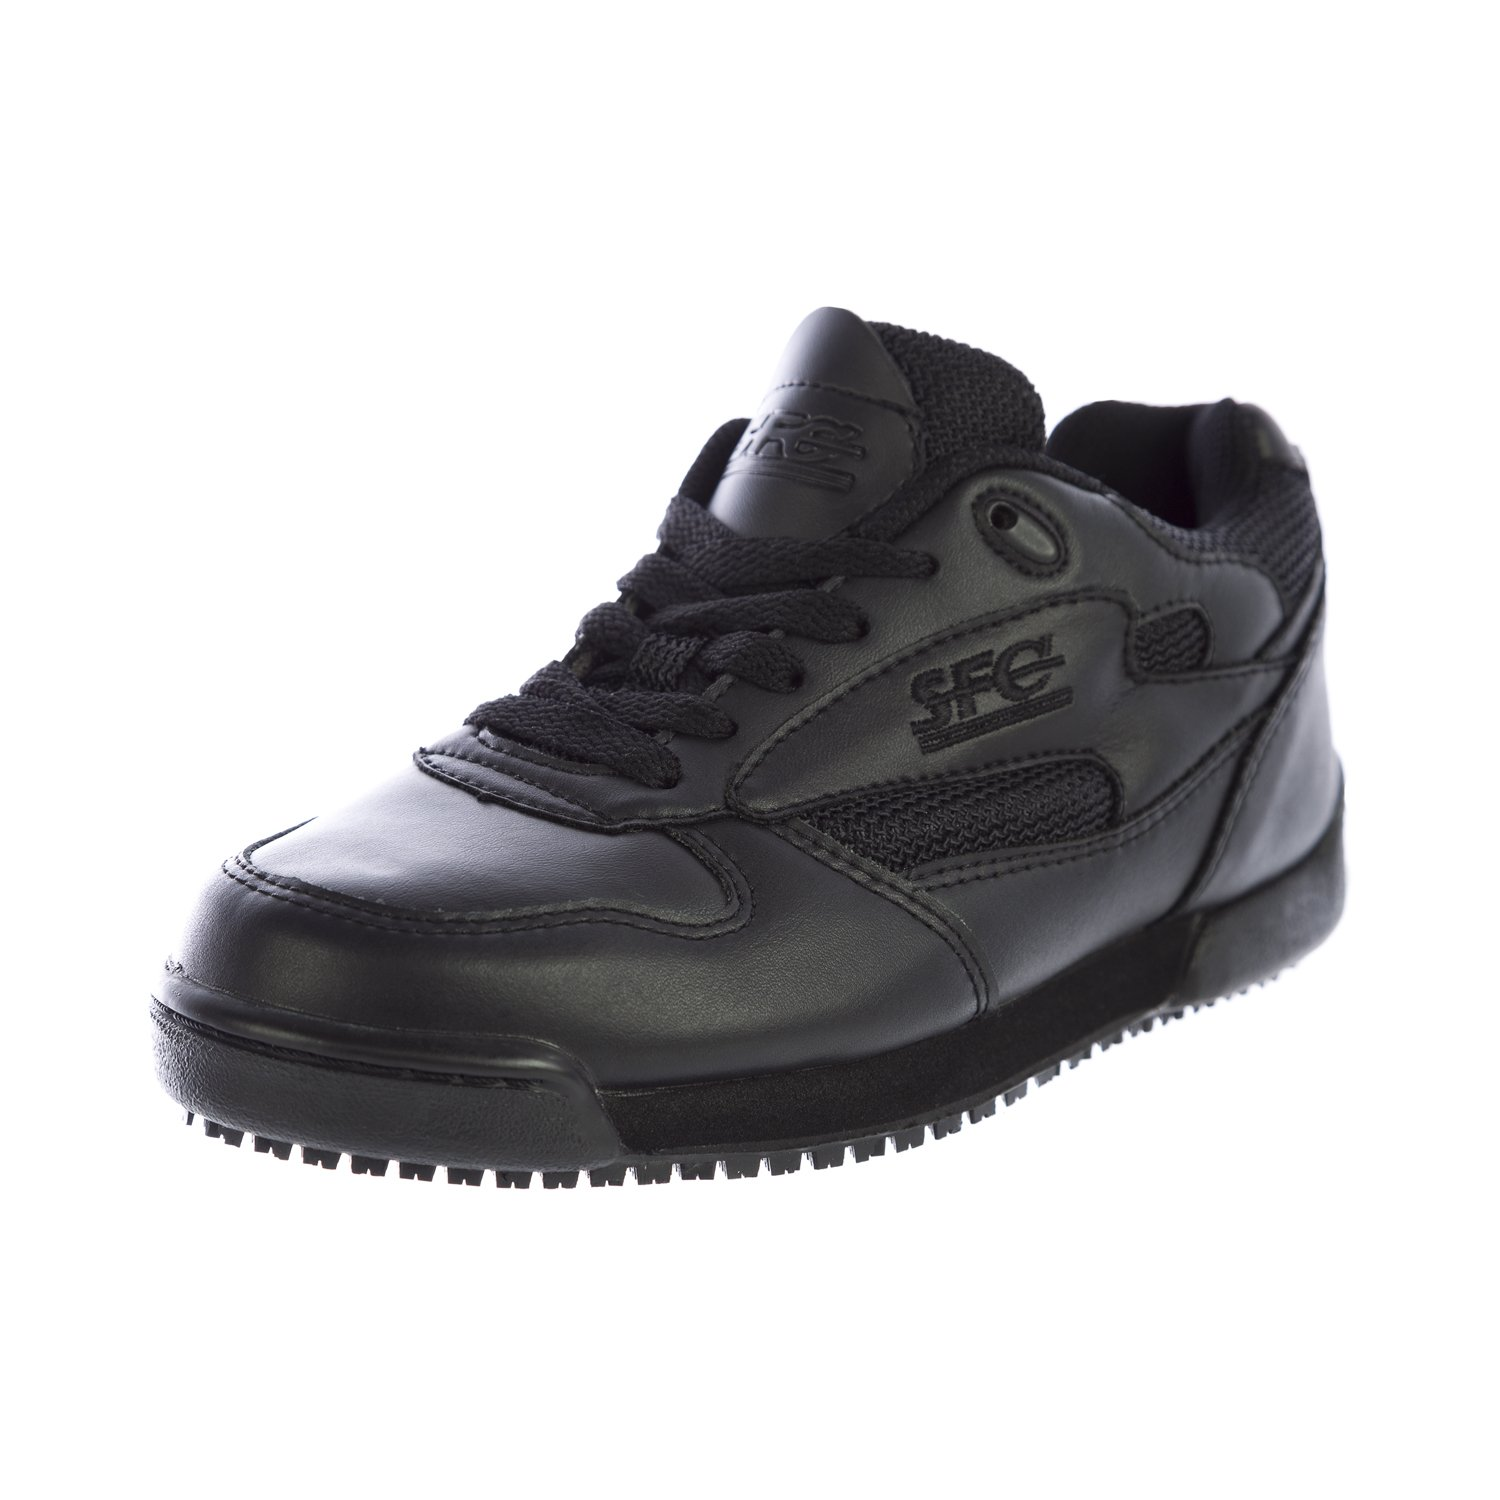 Shoes For Crews Women's Proclassic III Leather Shoes 7001 Size 4 Black